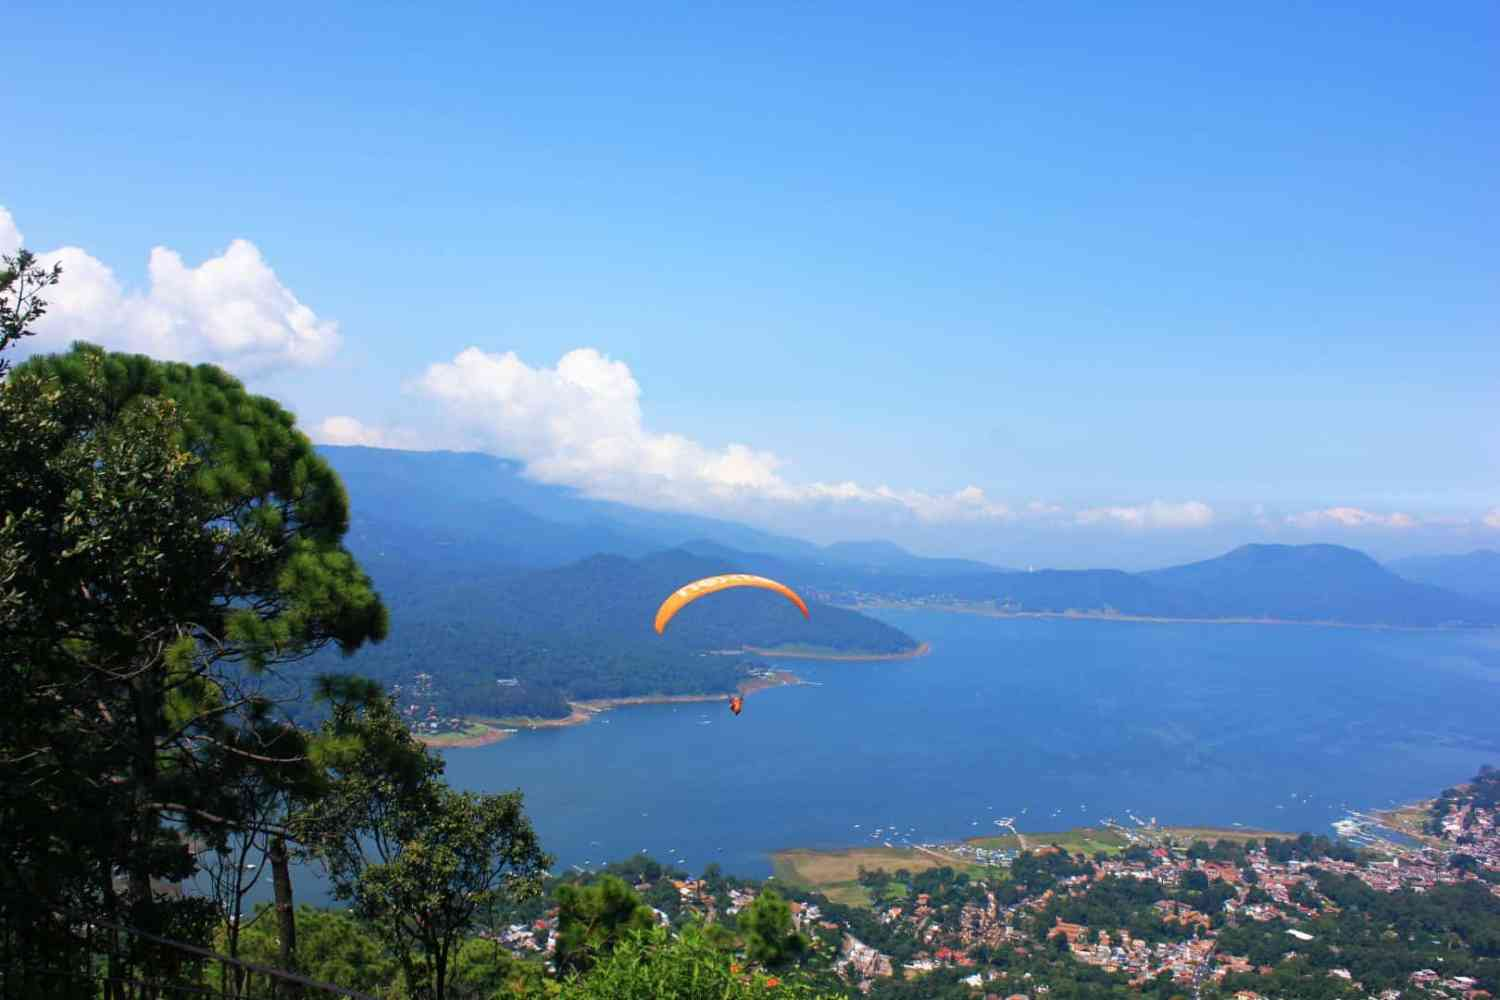 Paragliding in Mexico